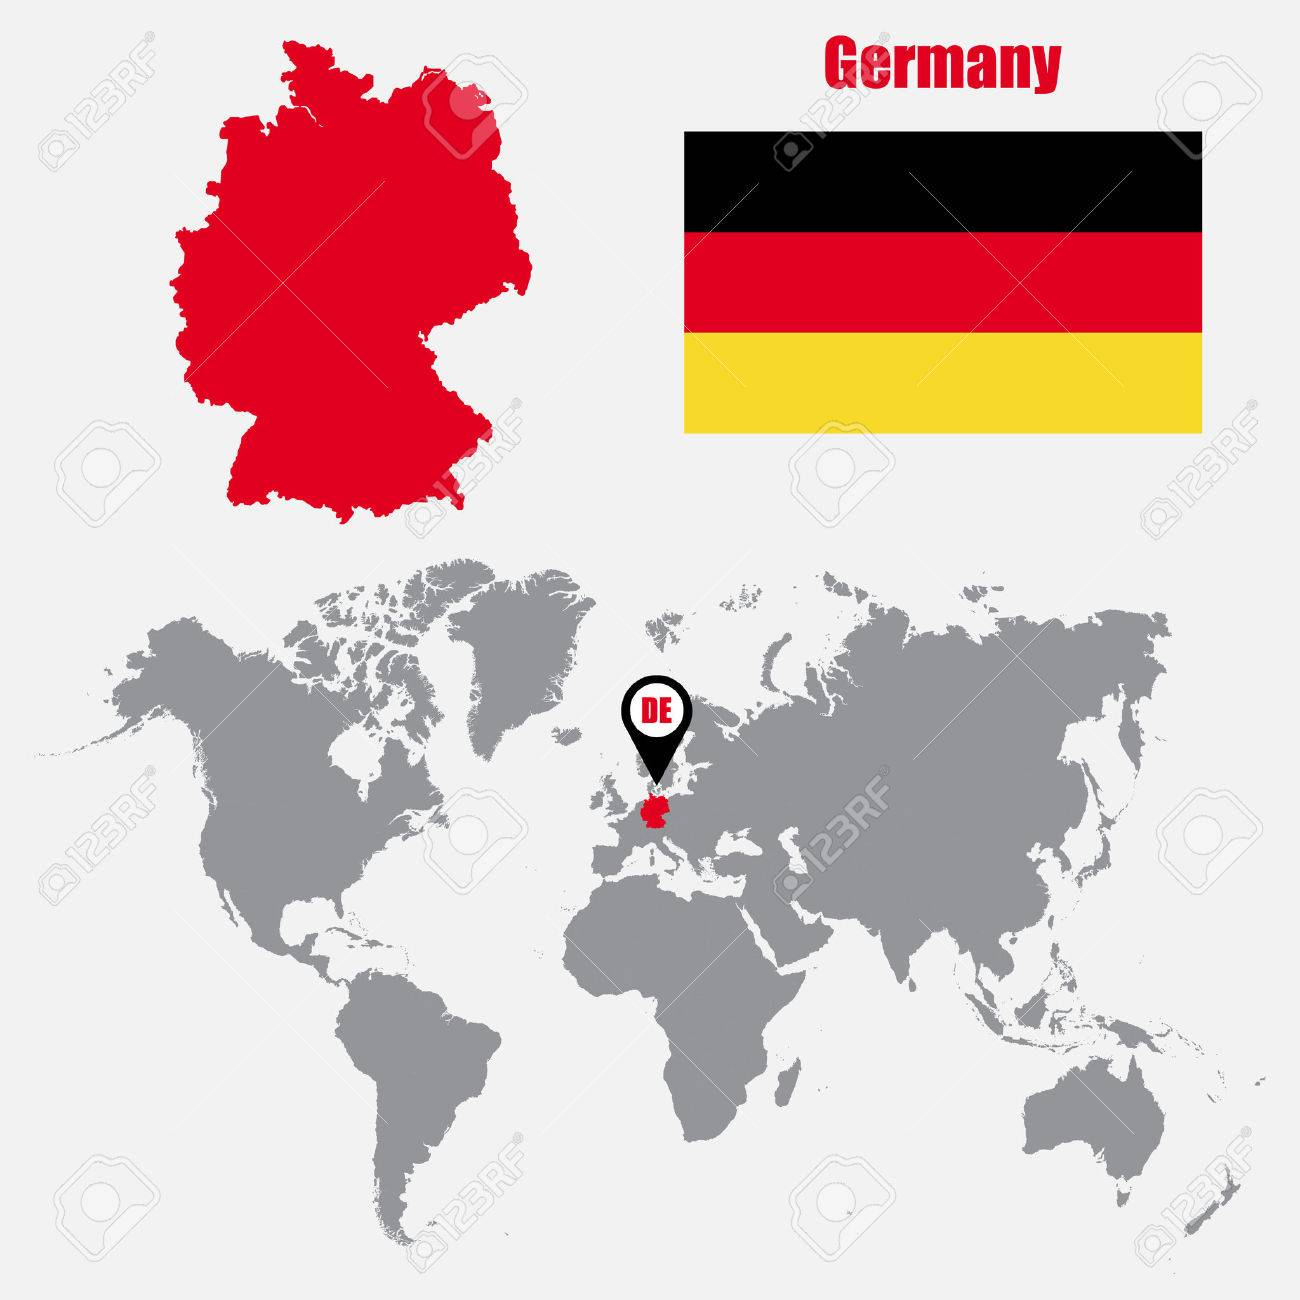 Germany map on a world map with flag and map pointer. Vector.. on south sudan flag and map, england flag and map, slovakia flag and map, mozambique flag and map, british flag and map, iran flag and map, kuwait flag and map, france flag and map, arizona flag and map, malaysia flag and map, israel flag and map, syria flag and map, belize flag and map, portugal flag and map, zambia flag and map, chad flag and map, china flag and map, ireland flag and map, lebanon flag and map, ukraine flag and map,